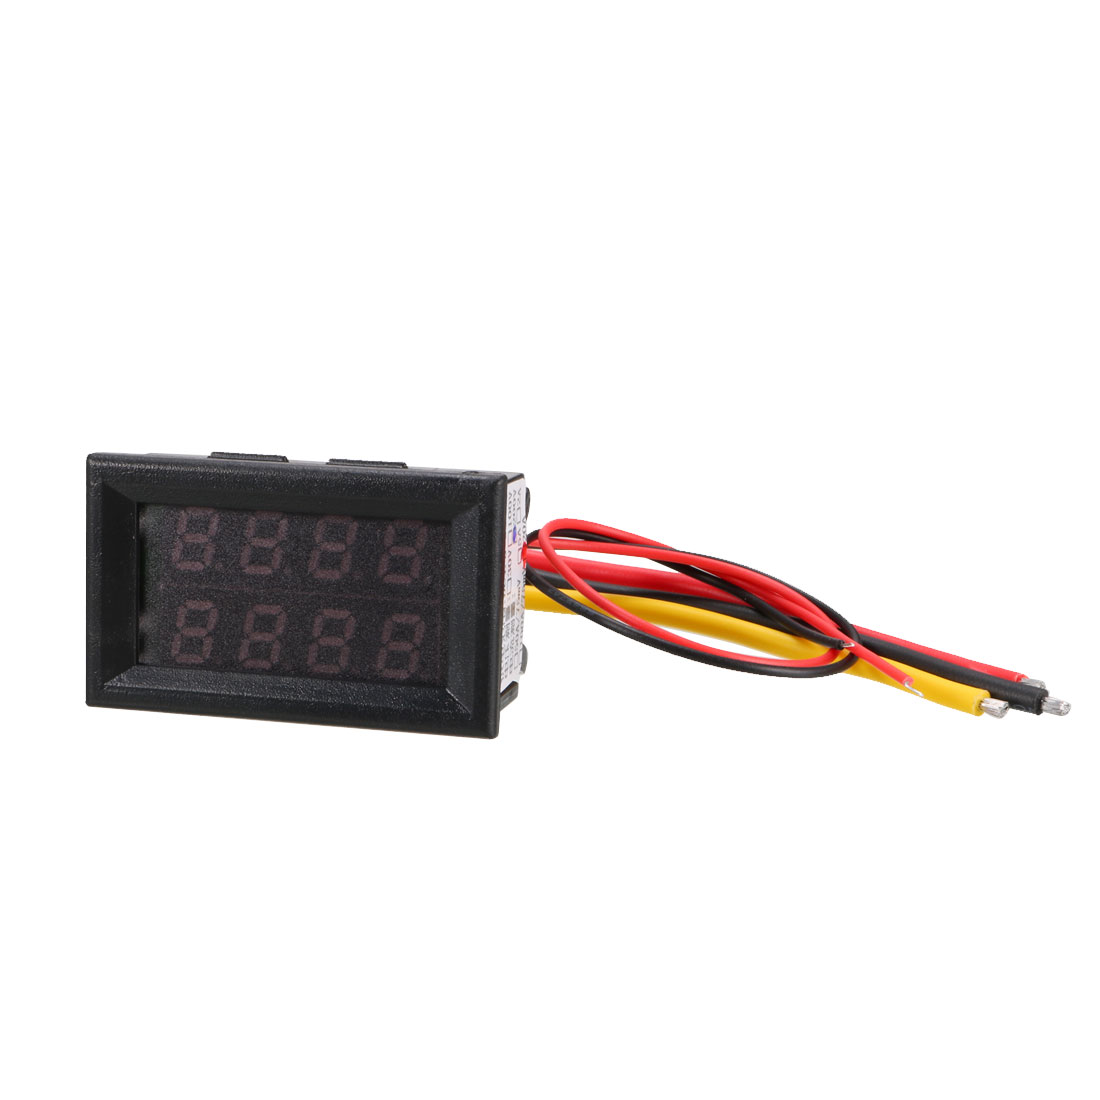 DC 0-200V 0-20A Blue Red LED Dual Digital Display Panel Voltmeter Ammeter Meter